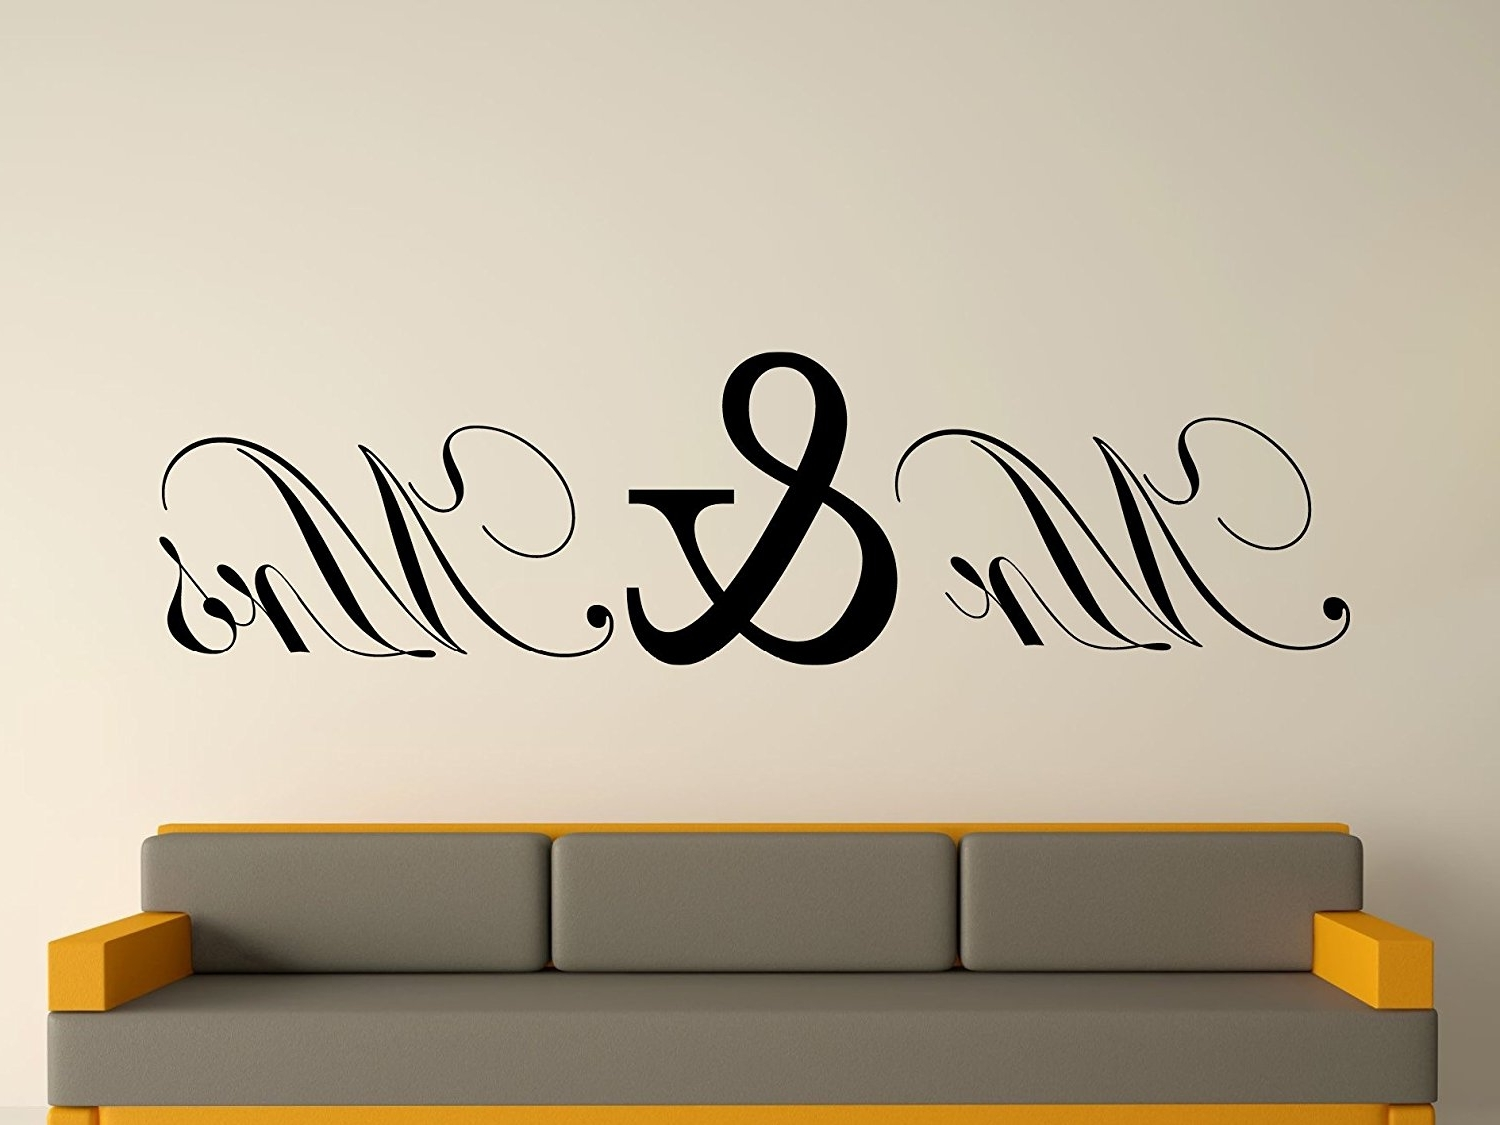 Mr And Mrs Wall Art Pertaining To Best And Newest Mr & Mrs Wall Art Sticker – Black, Large: Amazon.co (View 5 of 15)